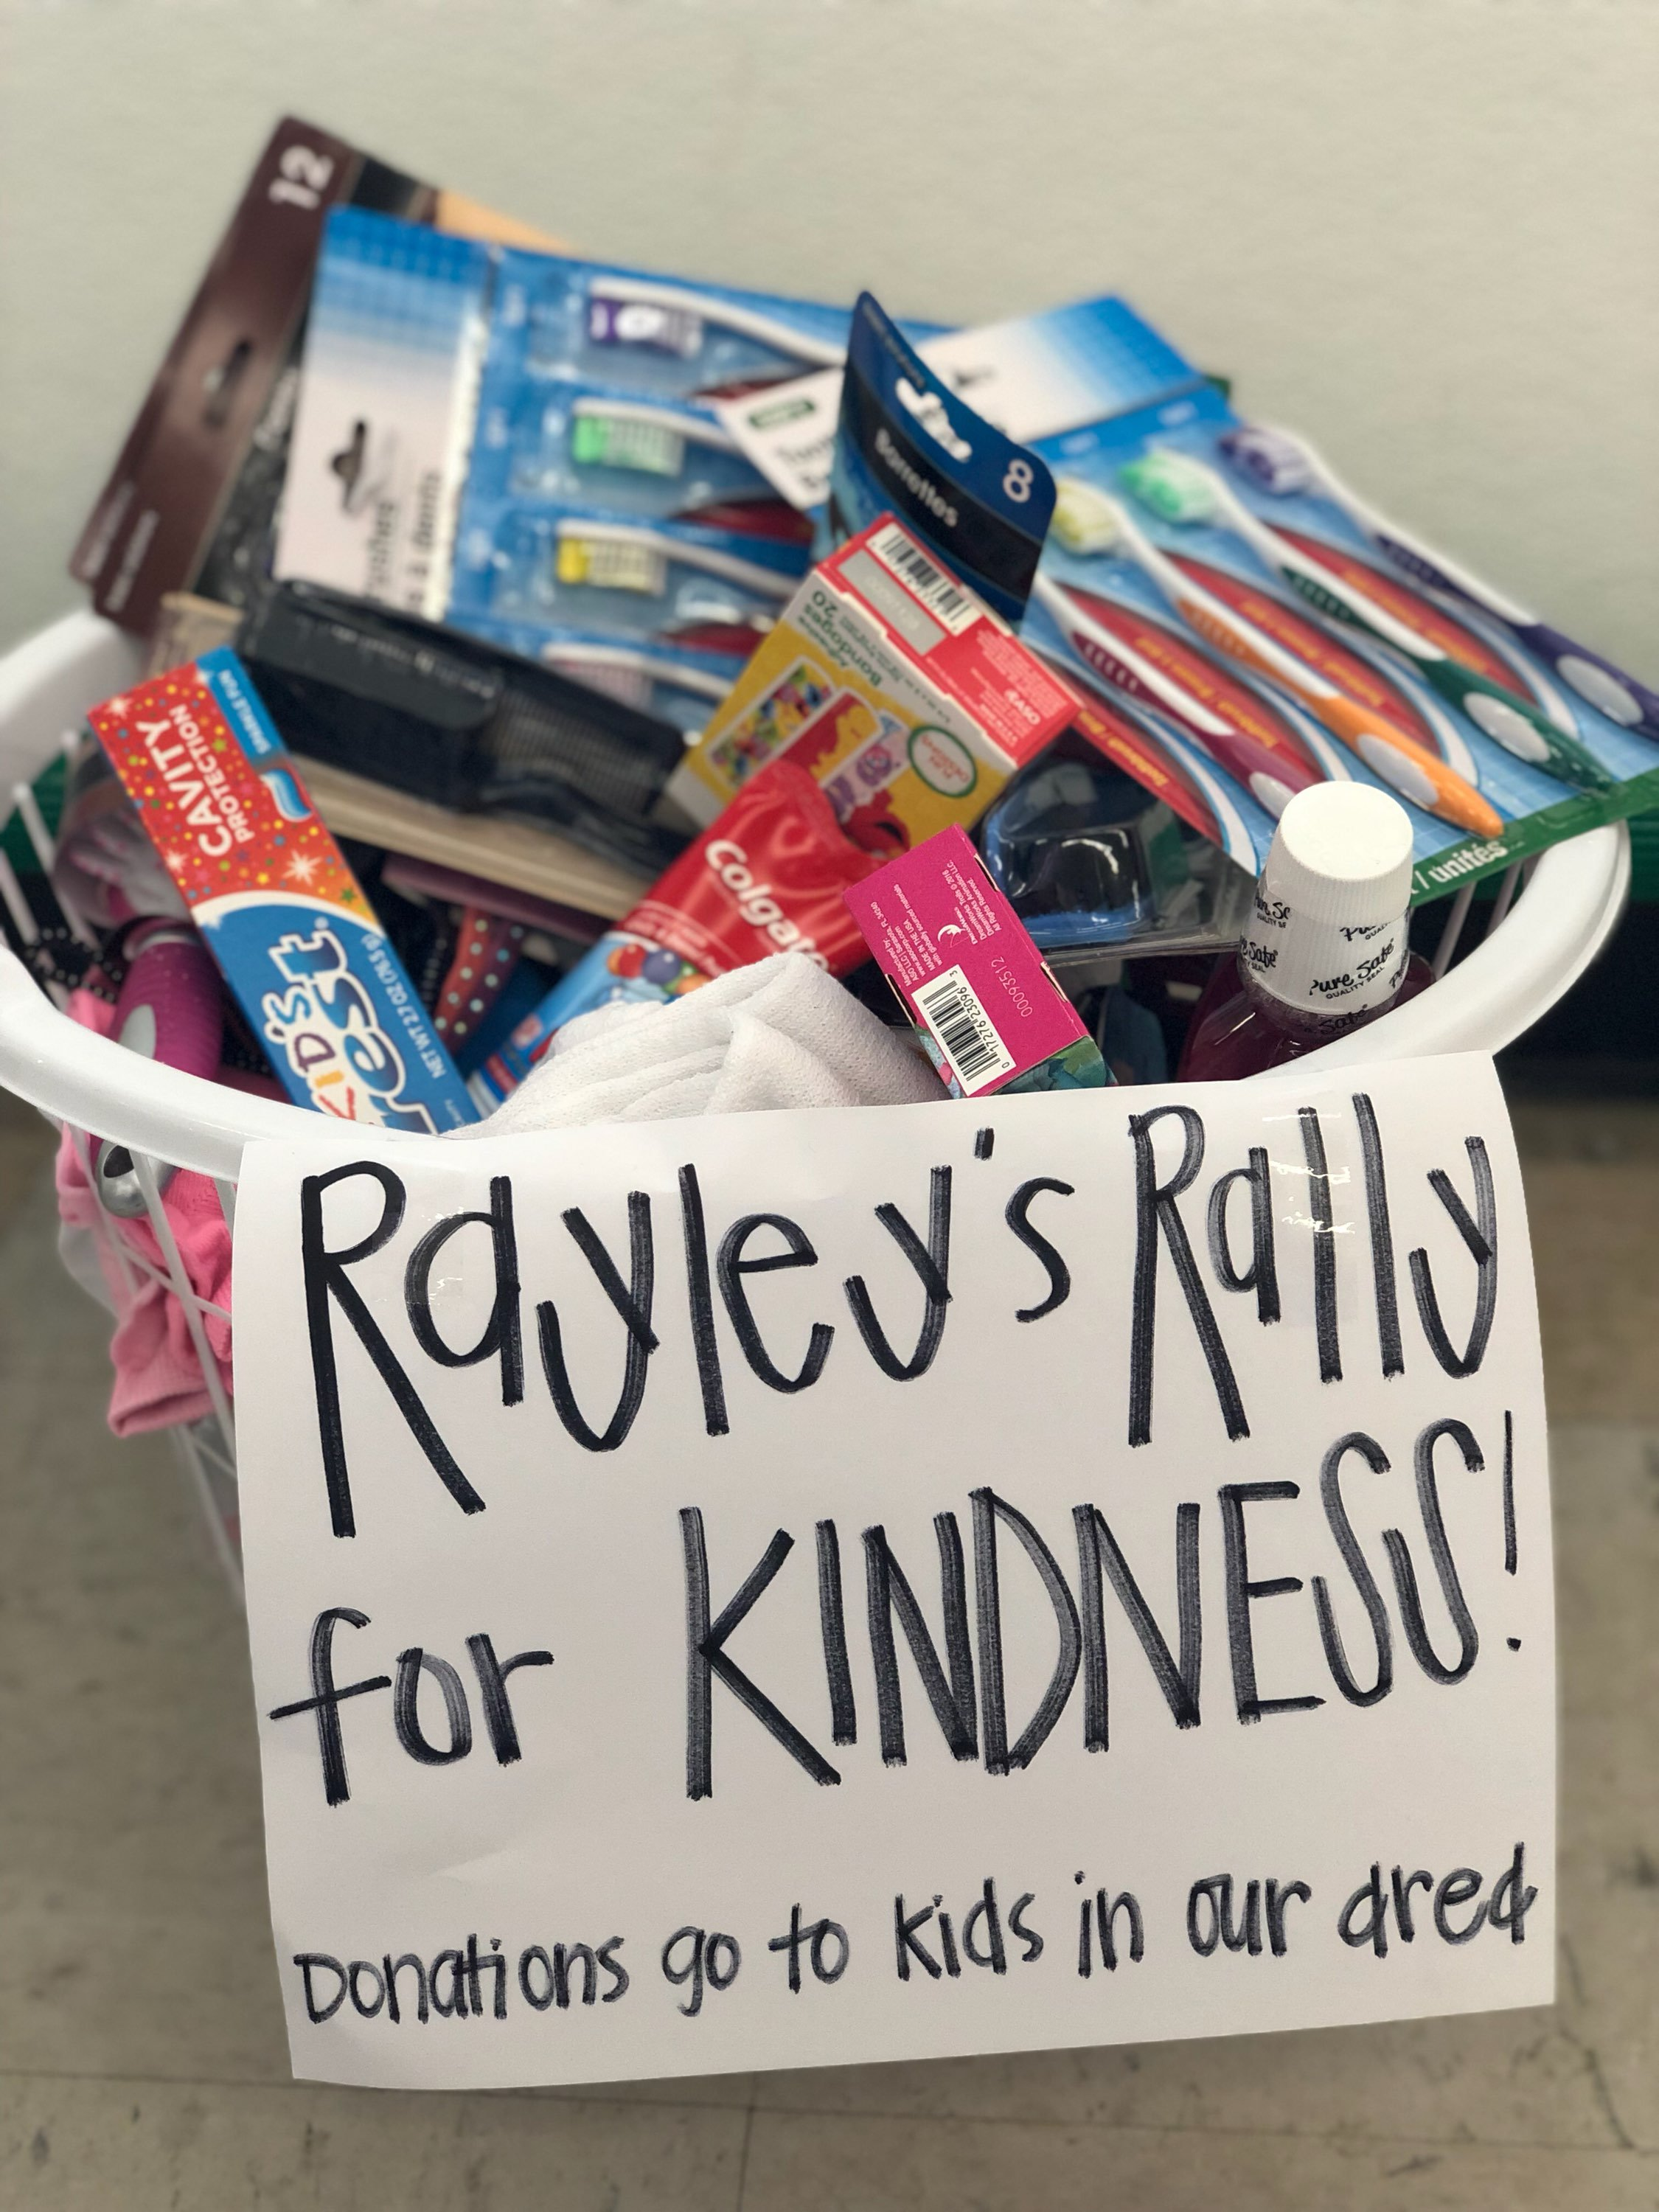 10 Year old Rayley Mitchell starts a program to give back to students in the community (Photo courtesy of the Mitchell Family)